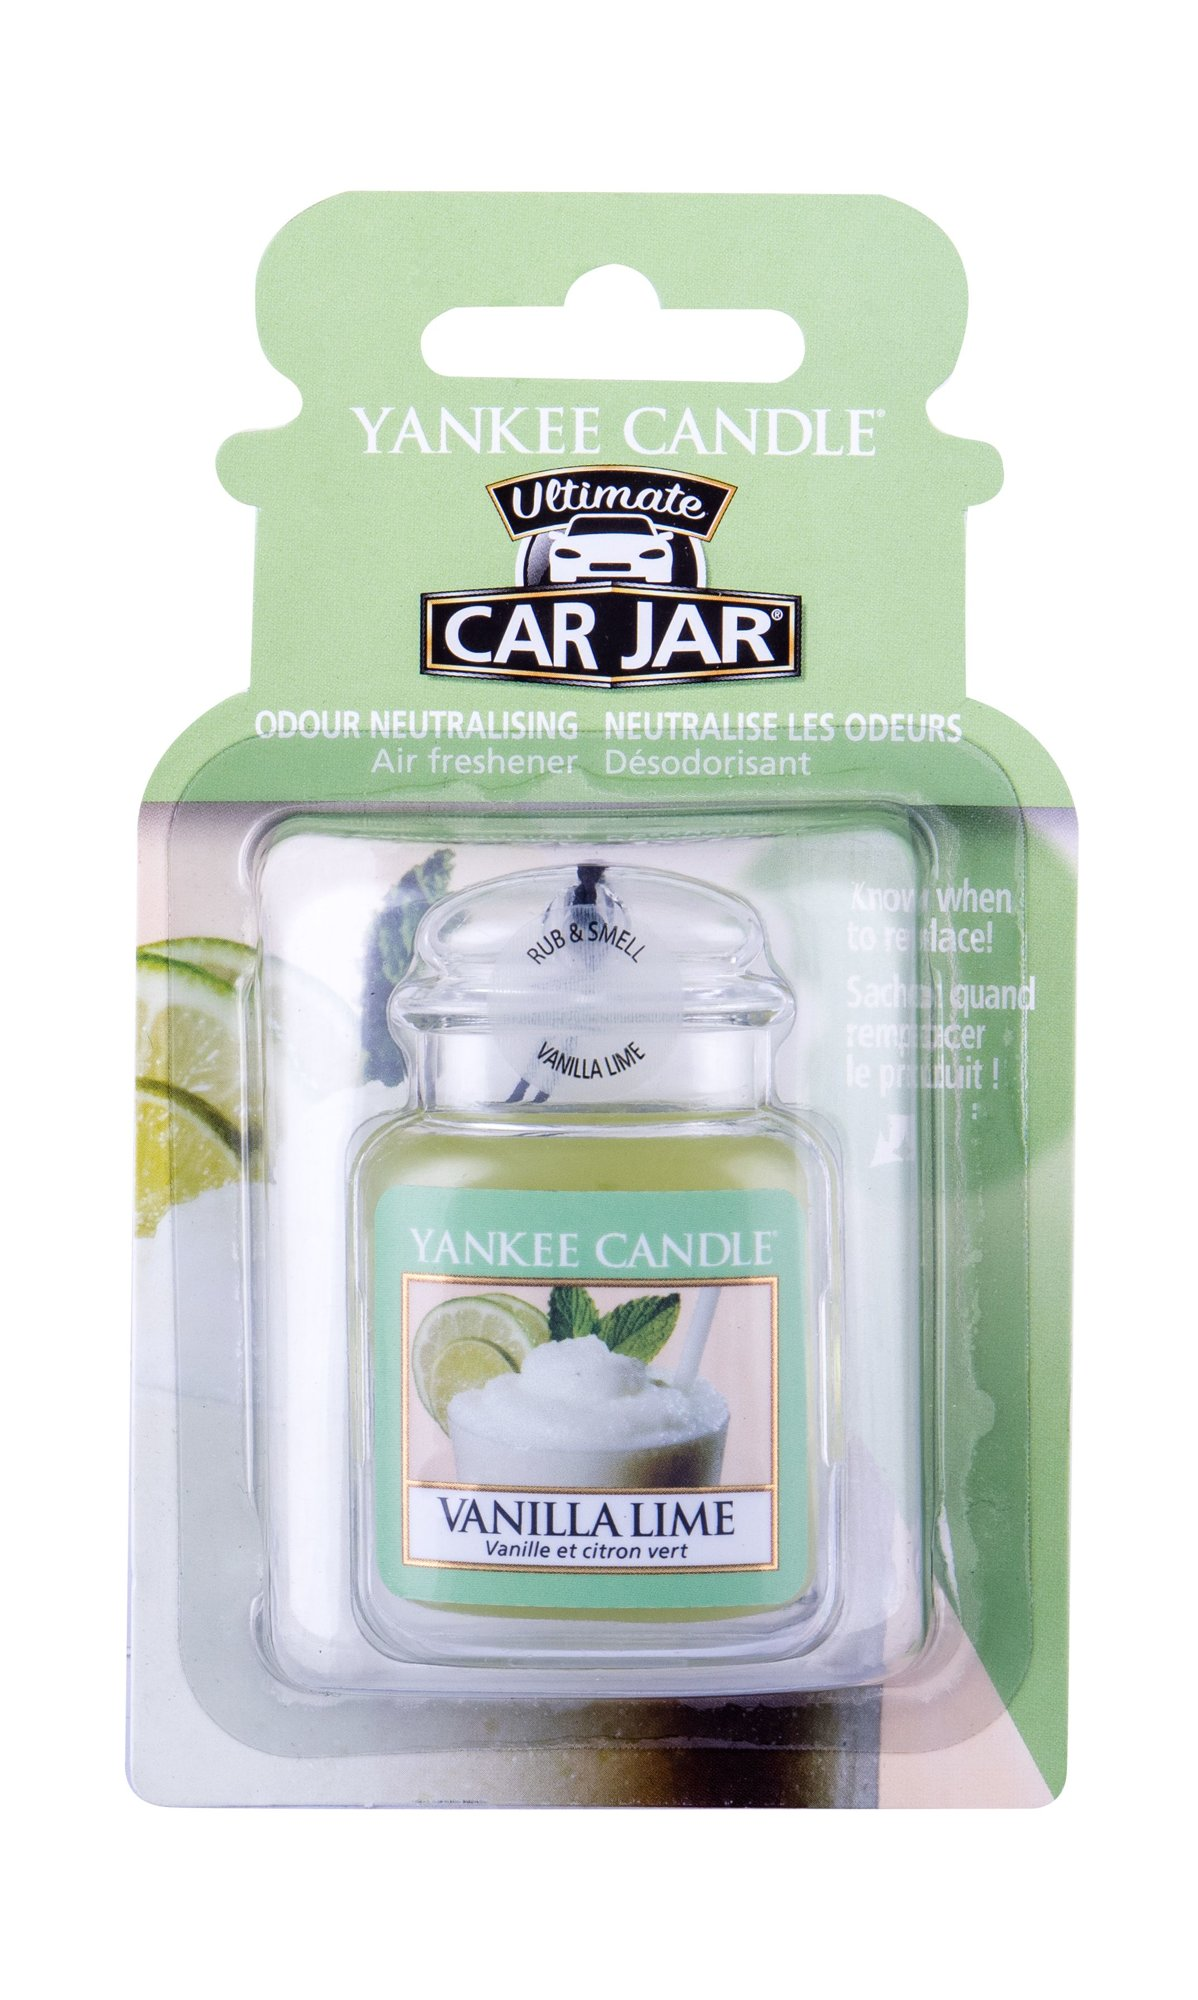 Yankee Candle Vanilla Lime Car Jar (Vůně do auta, U, 1 ks)